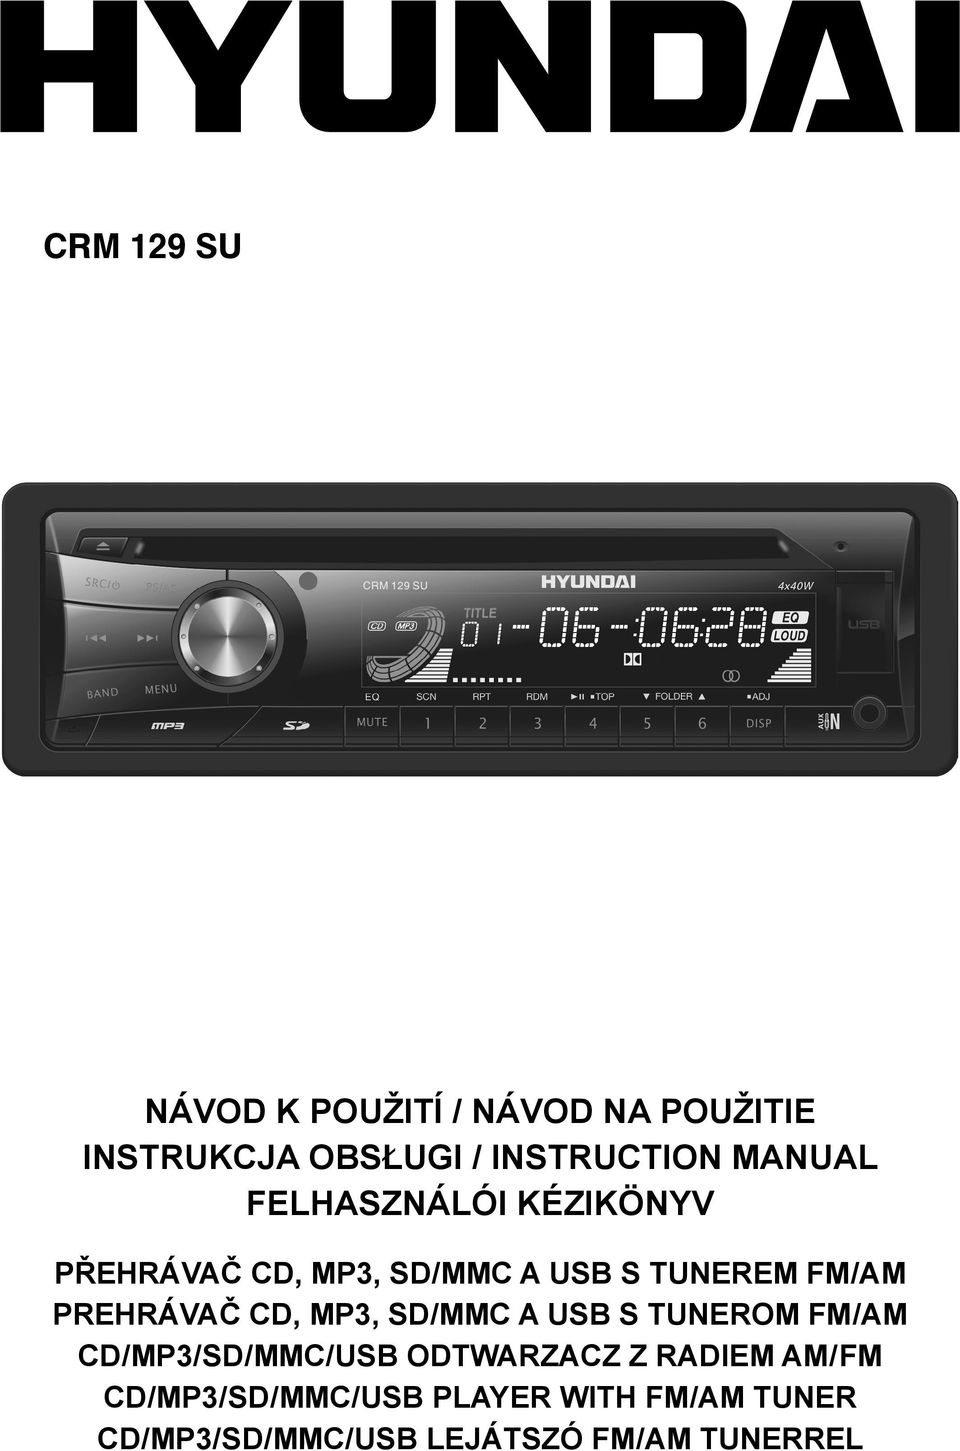 PREHRÁVAČ CD, MP3, SD/MMC a USB S TUNEROM FM/AM CD/MP3/SD/MMC/USB ODTWARZACZ Z